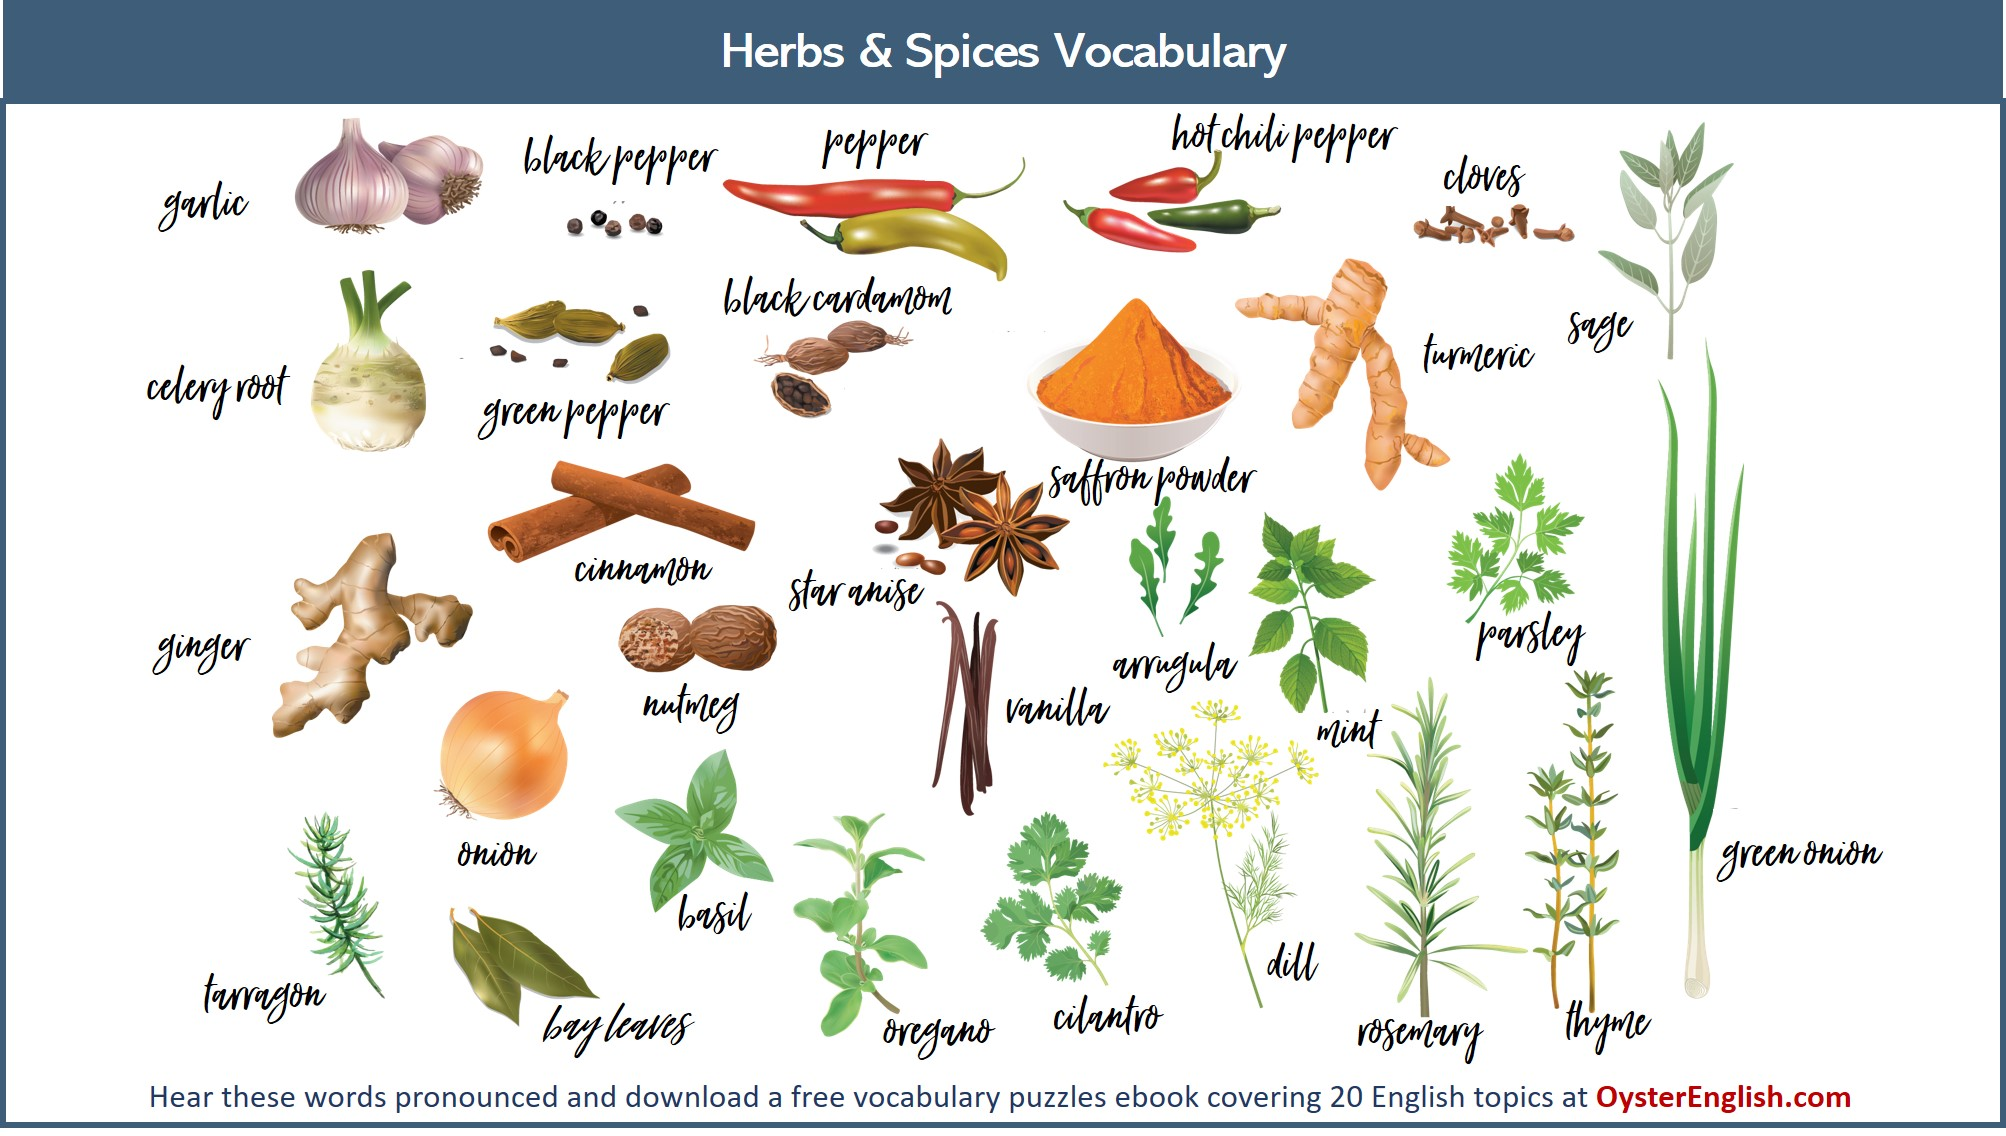 A collection of the illustration of the herbs and spices listed on this page.